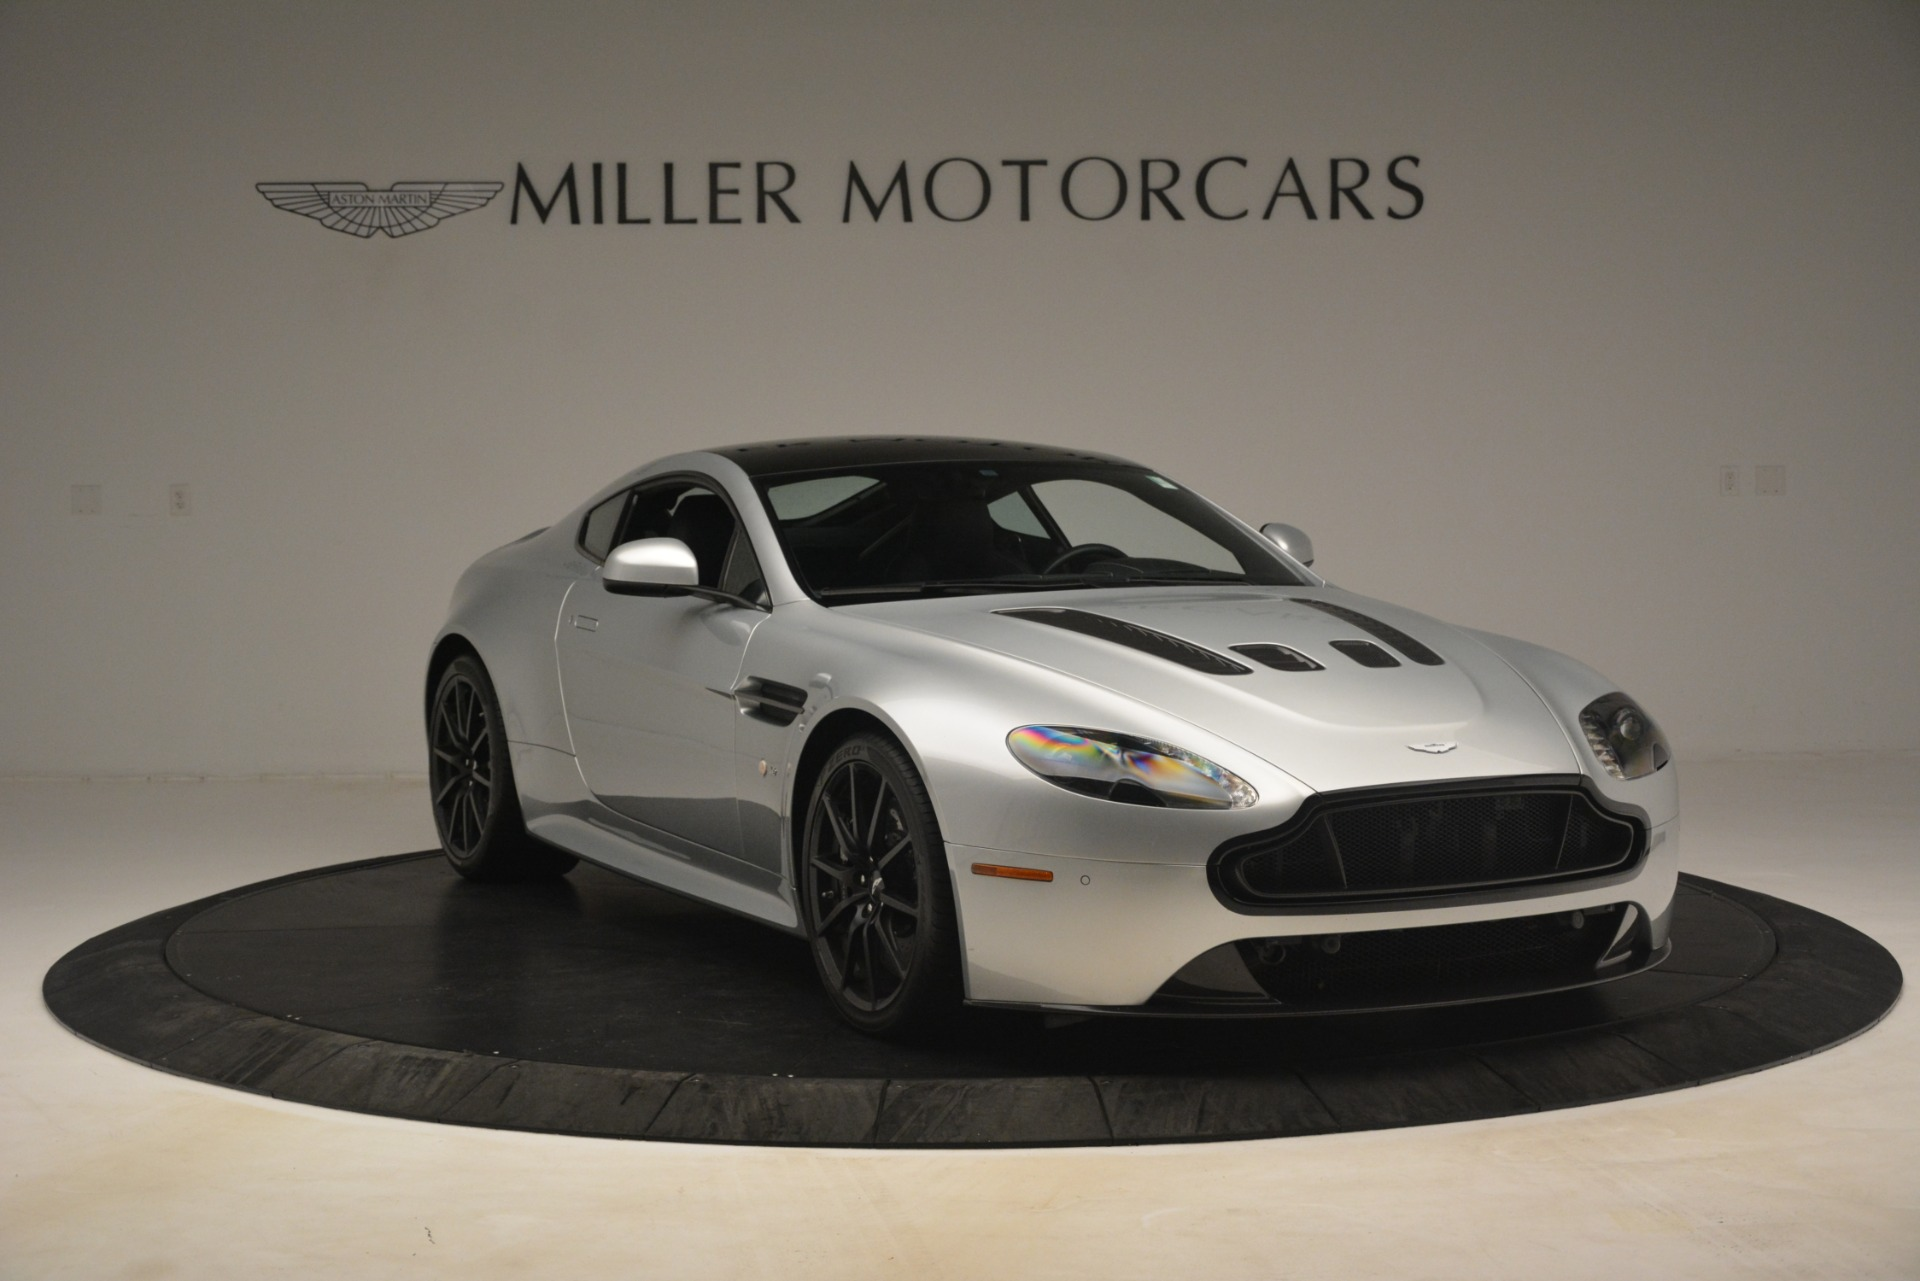 Used 2015 Aston Martin V12 Vantage S Coupe For Sale In Greenwich, CT 3206_p11